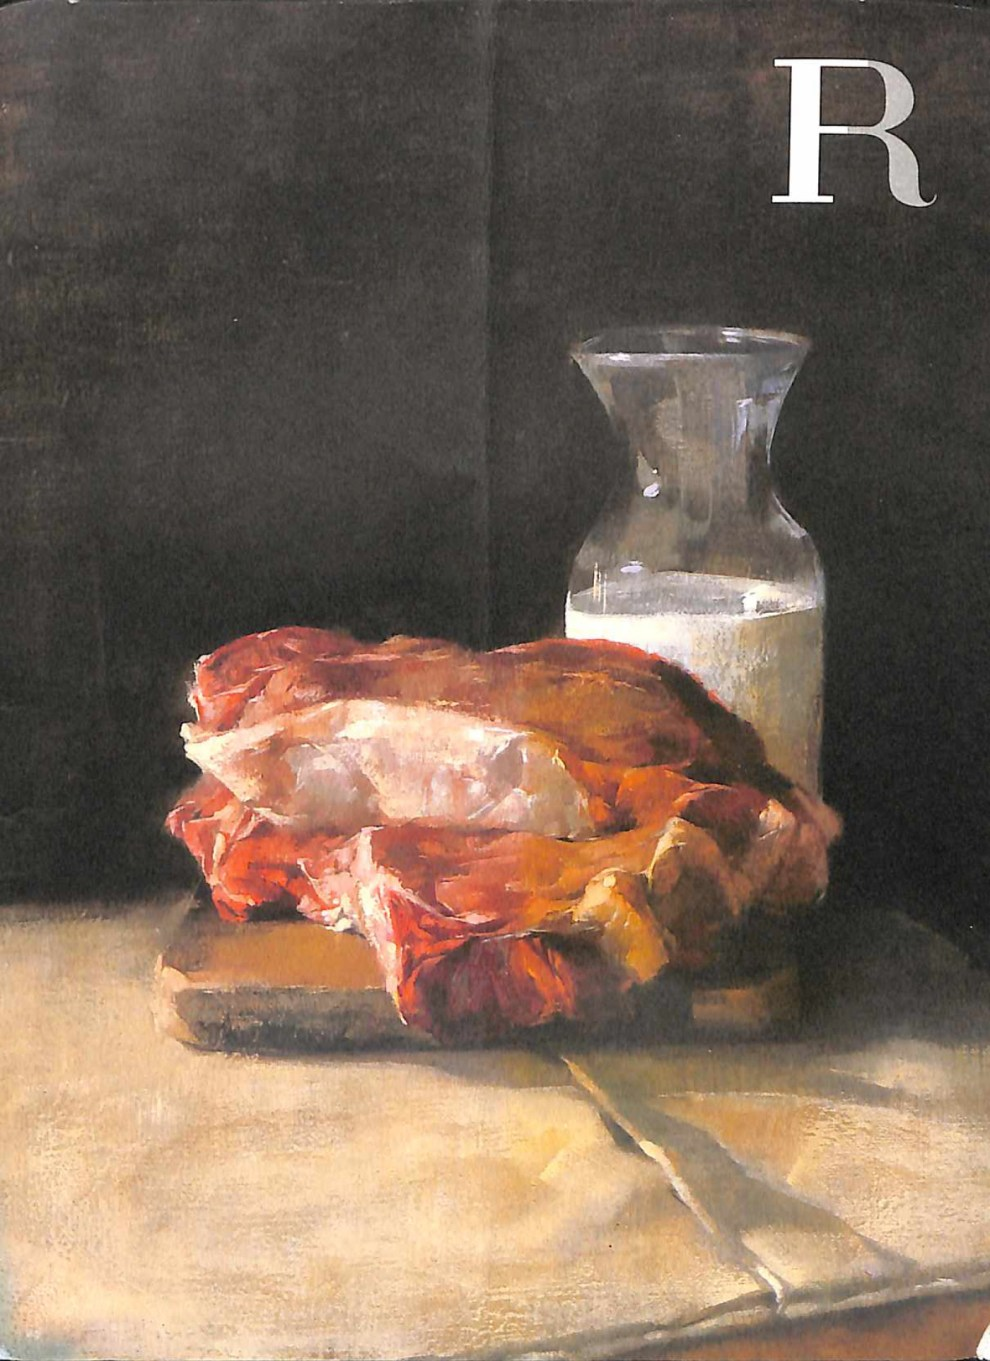 Colleen Barry: Our Daily Bread - Frost & Reed, 2006